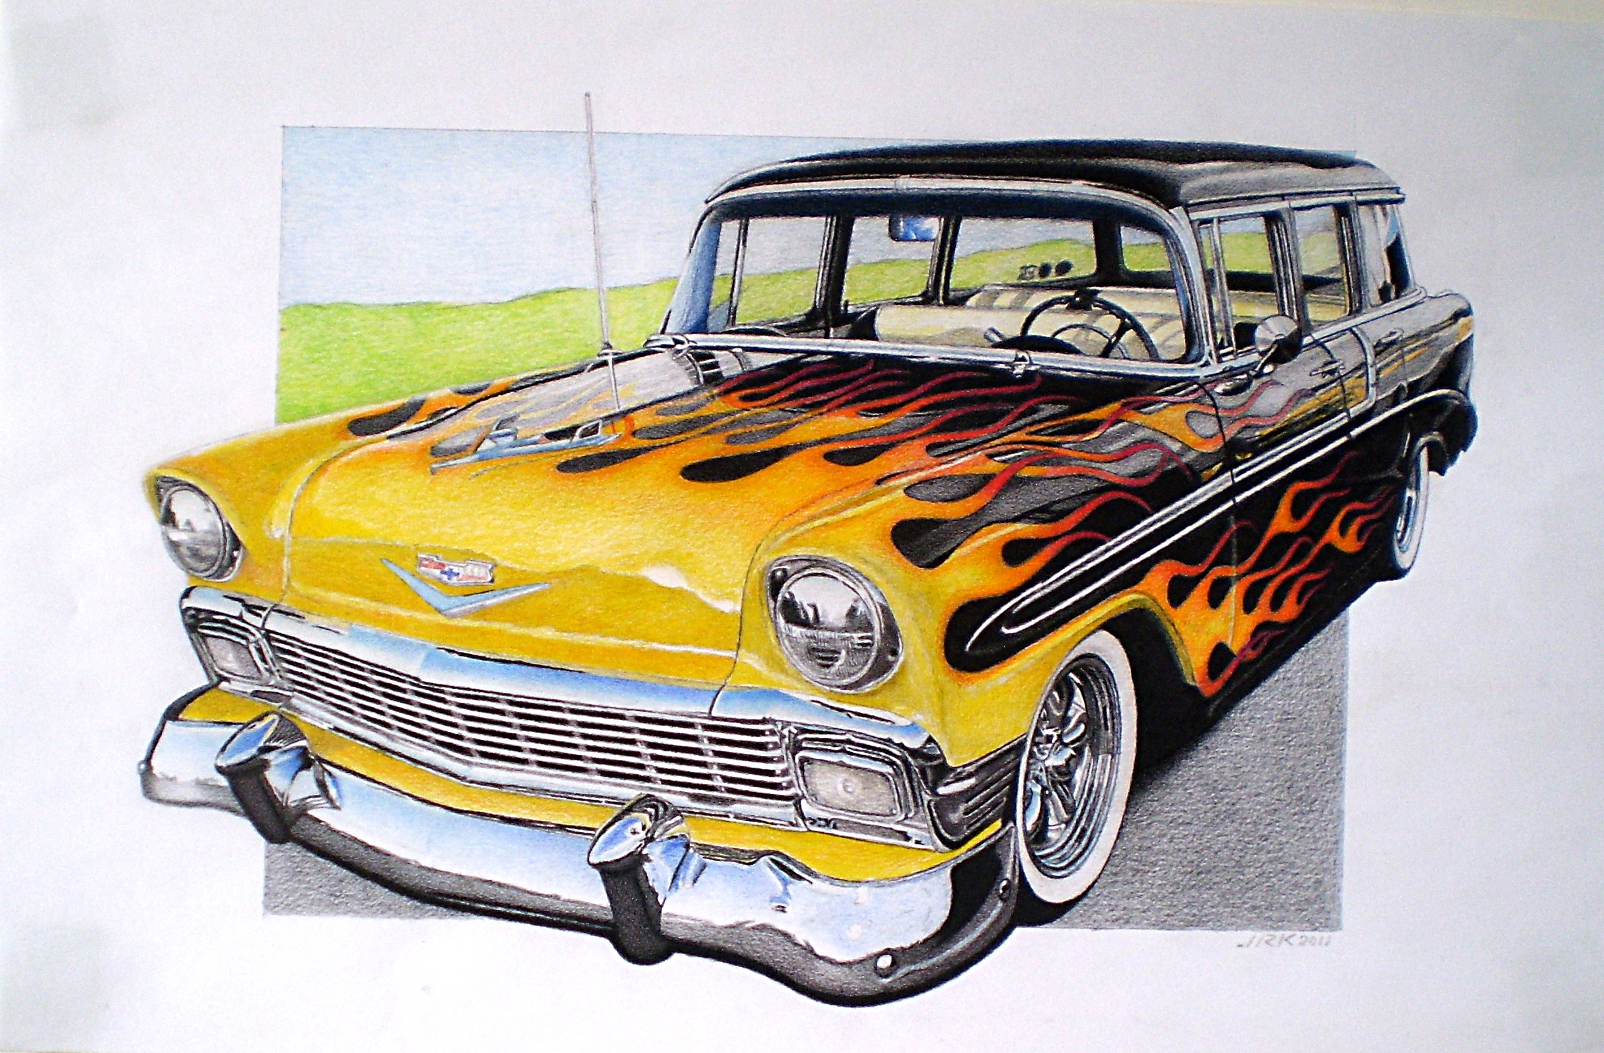 Click image for larger version  Name:56ChevyFinal2.JPG Views:164 Size:1.16 MB ID:54912